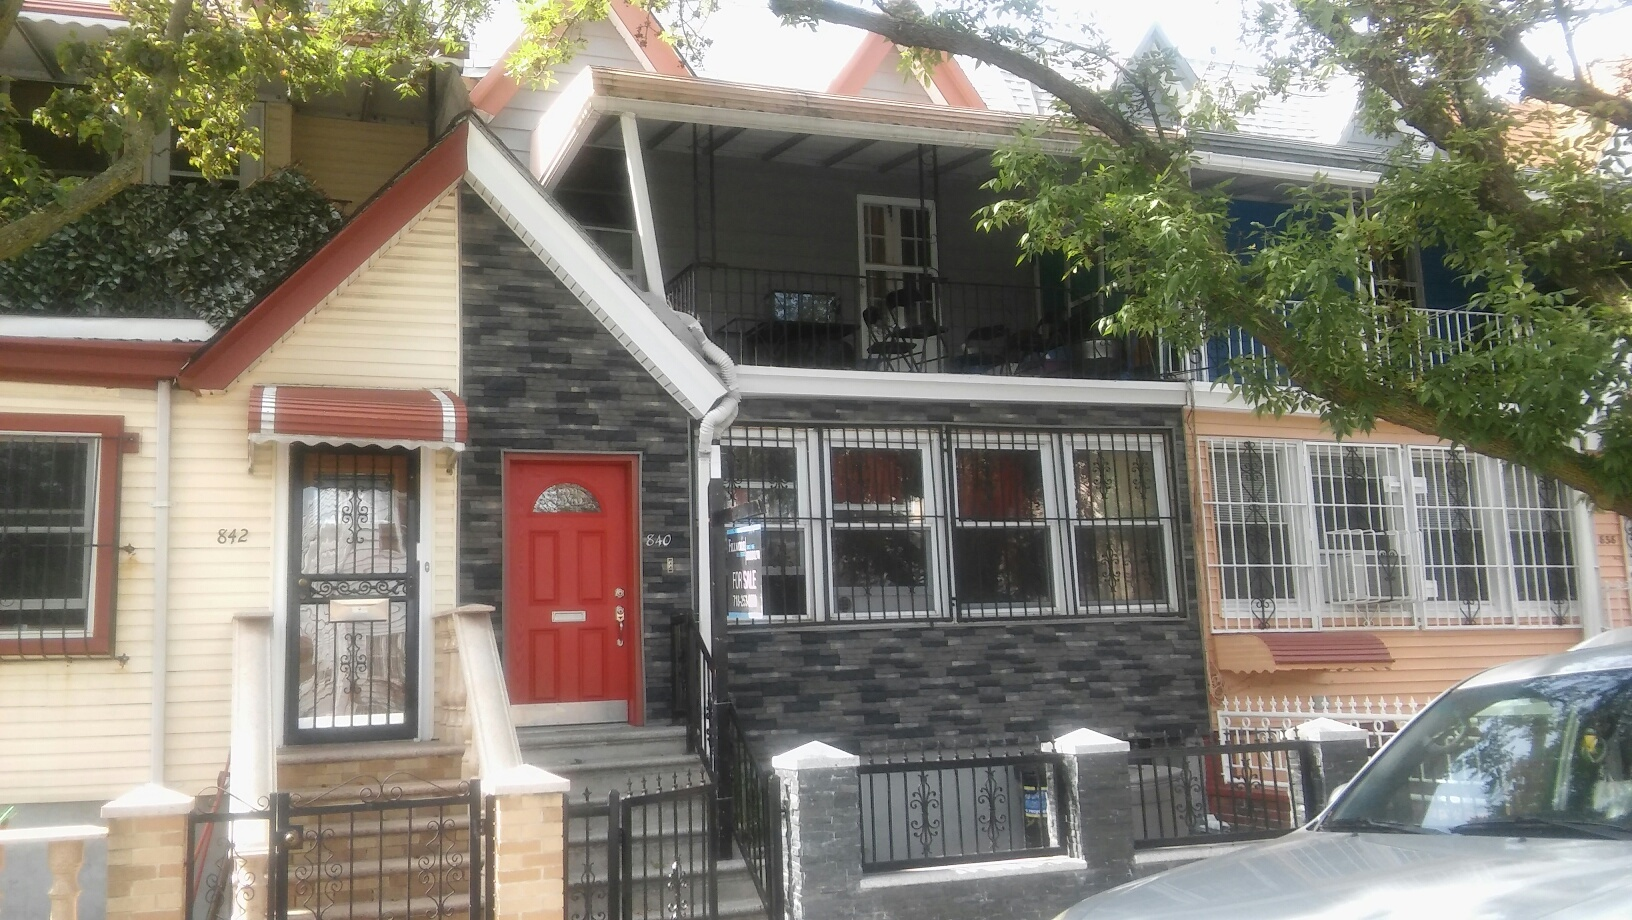 Multi Family Homes in Flatbush Brooklyn For sale, Flatbush Brooklyn Real Estate